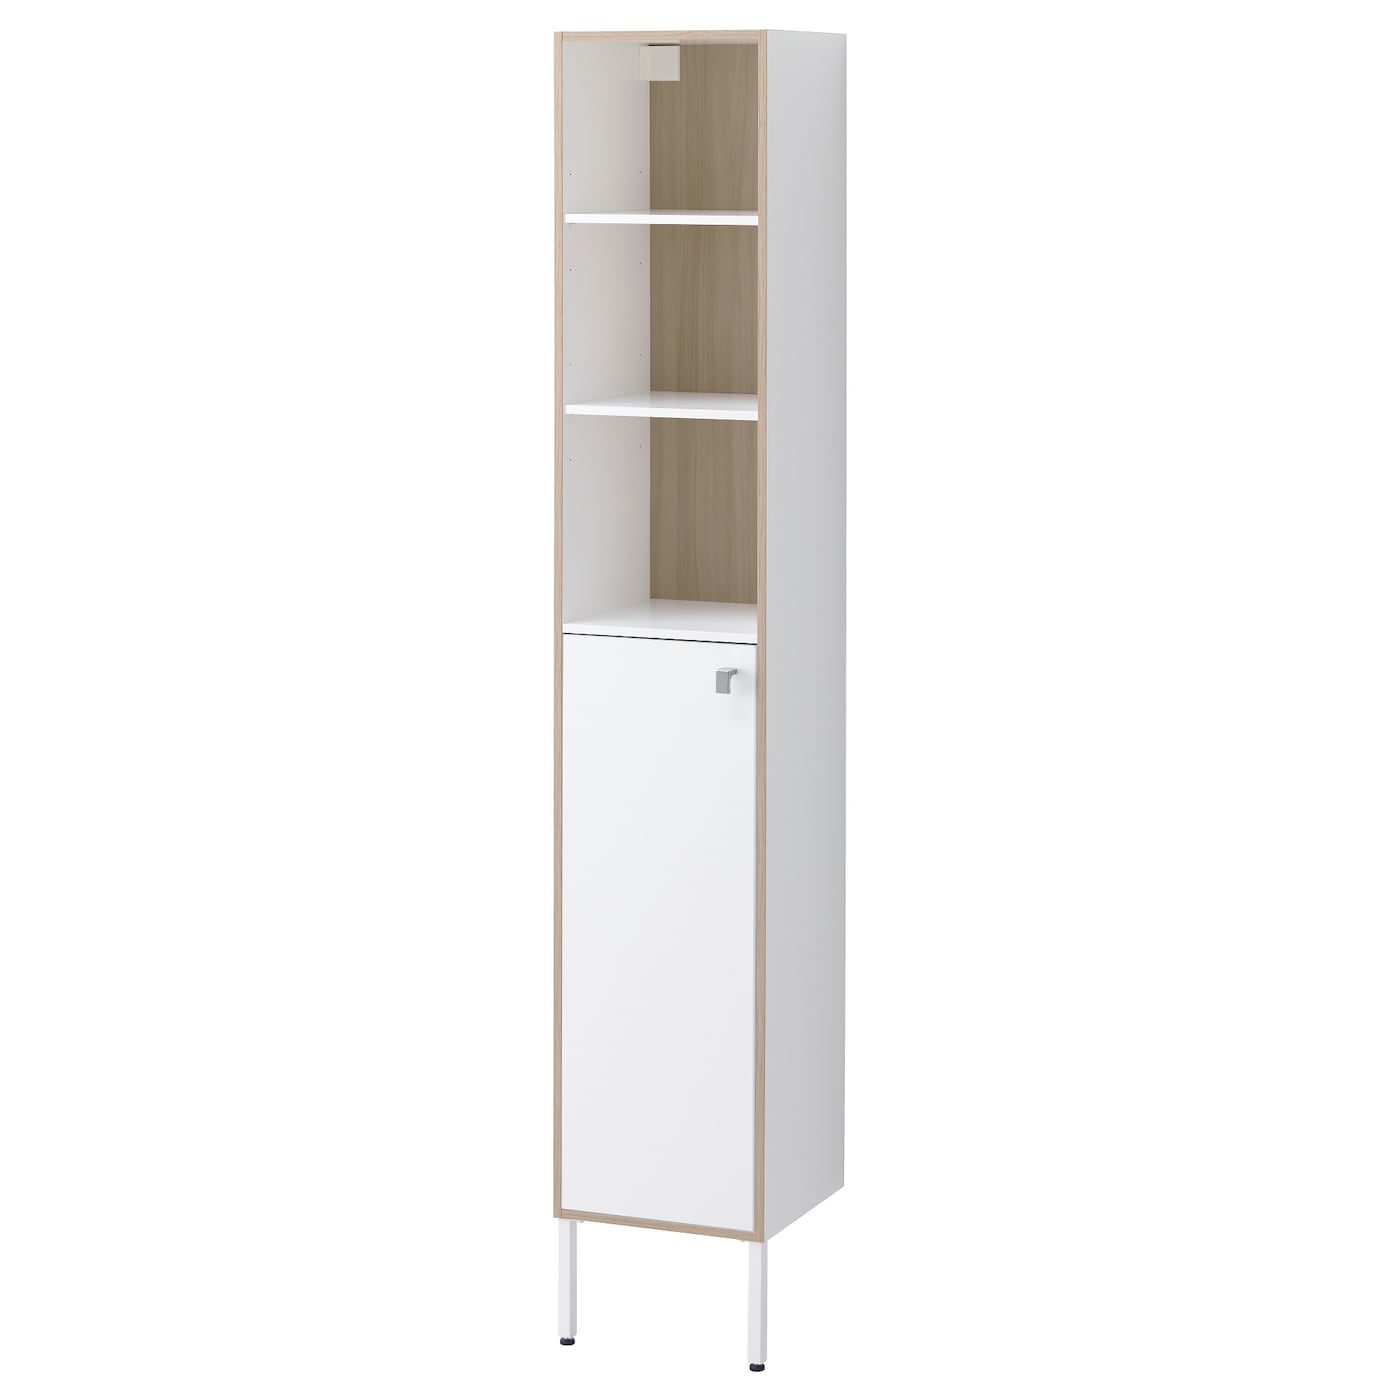 IKEA TYNGEN high cabinet Suitable for a smaller bathroom, as the cabinet frame is just 30 cm wide.